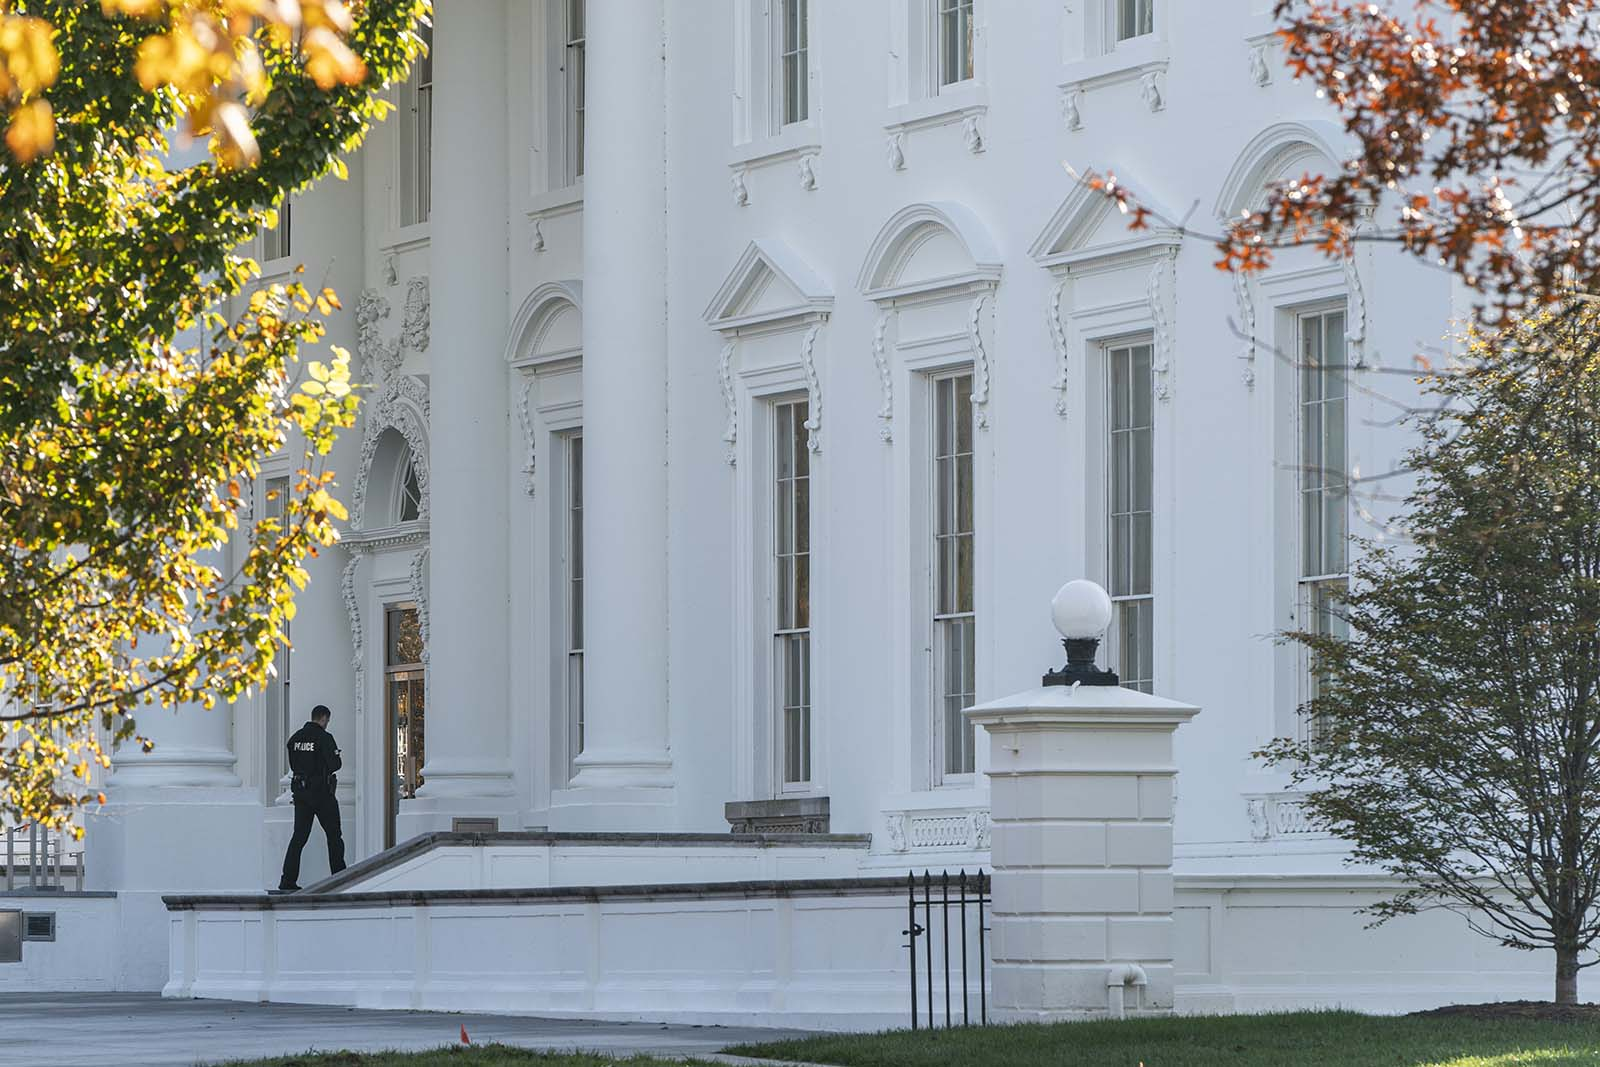 A Secret Service officer patrols at the White House on November 9, in Washington.